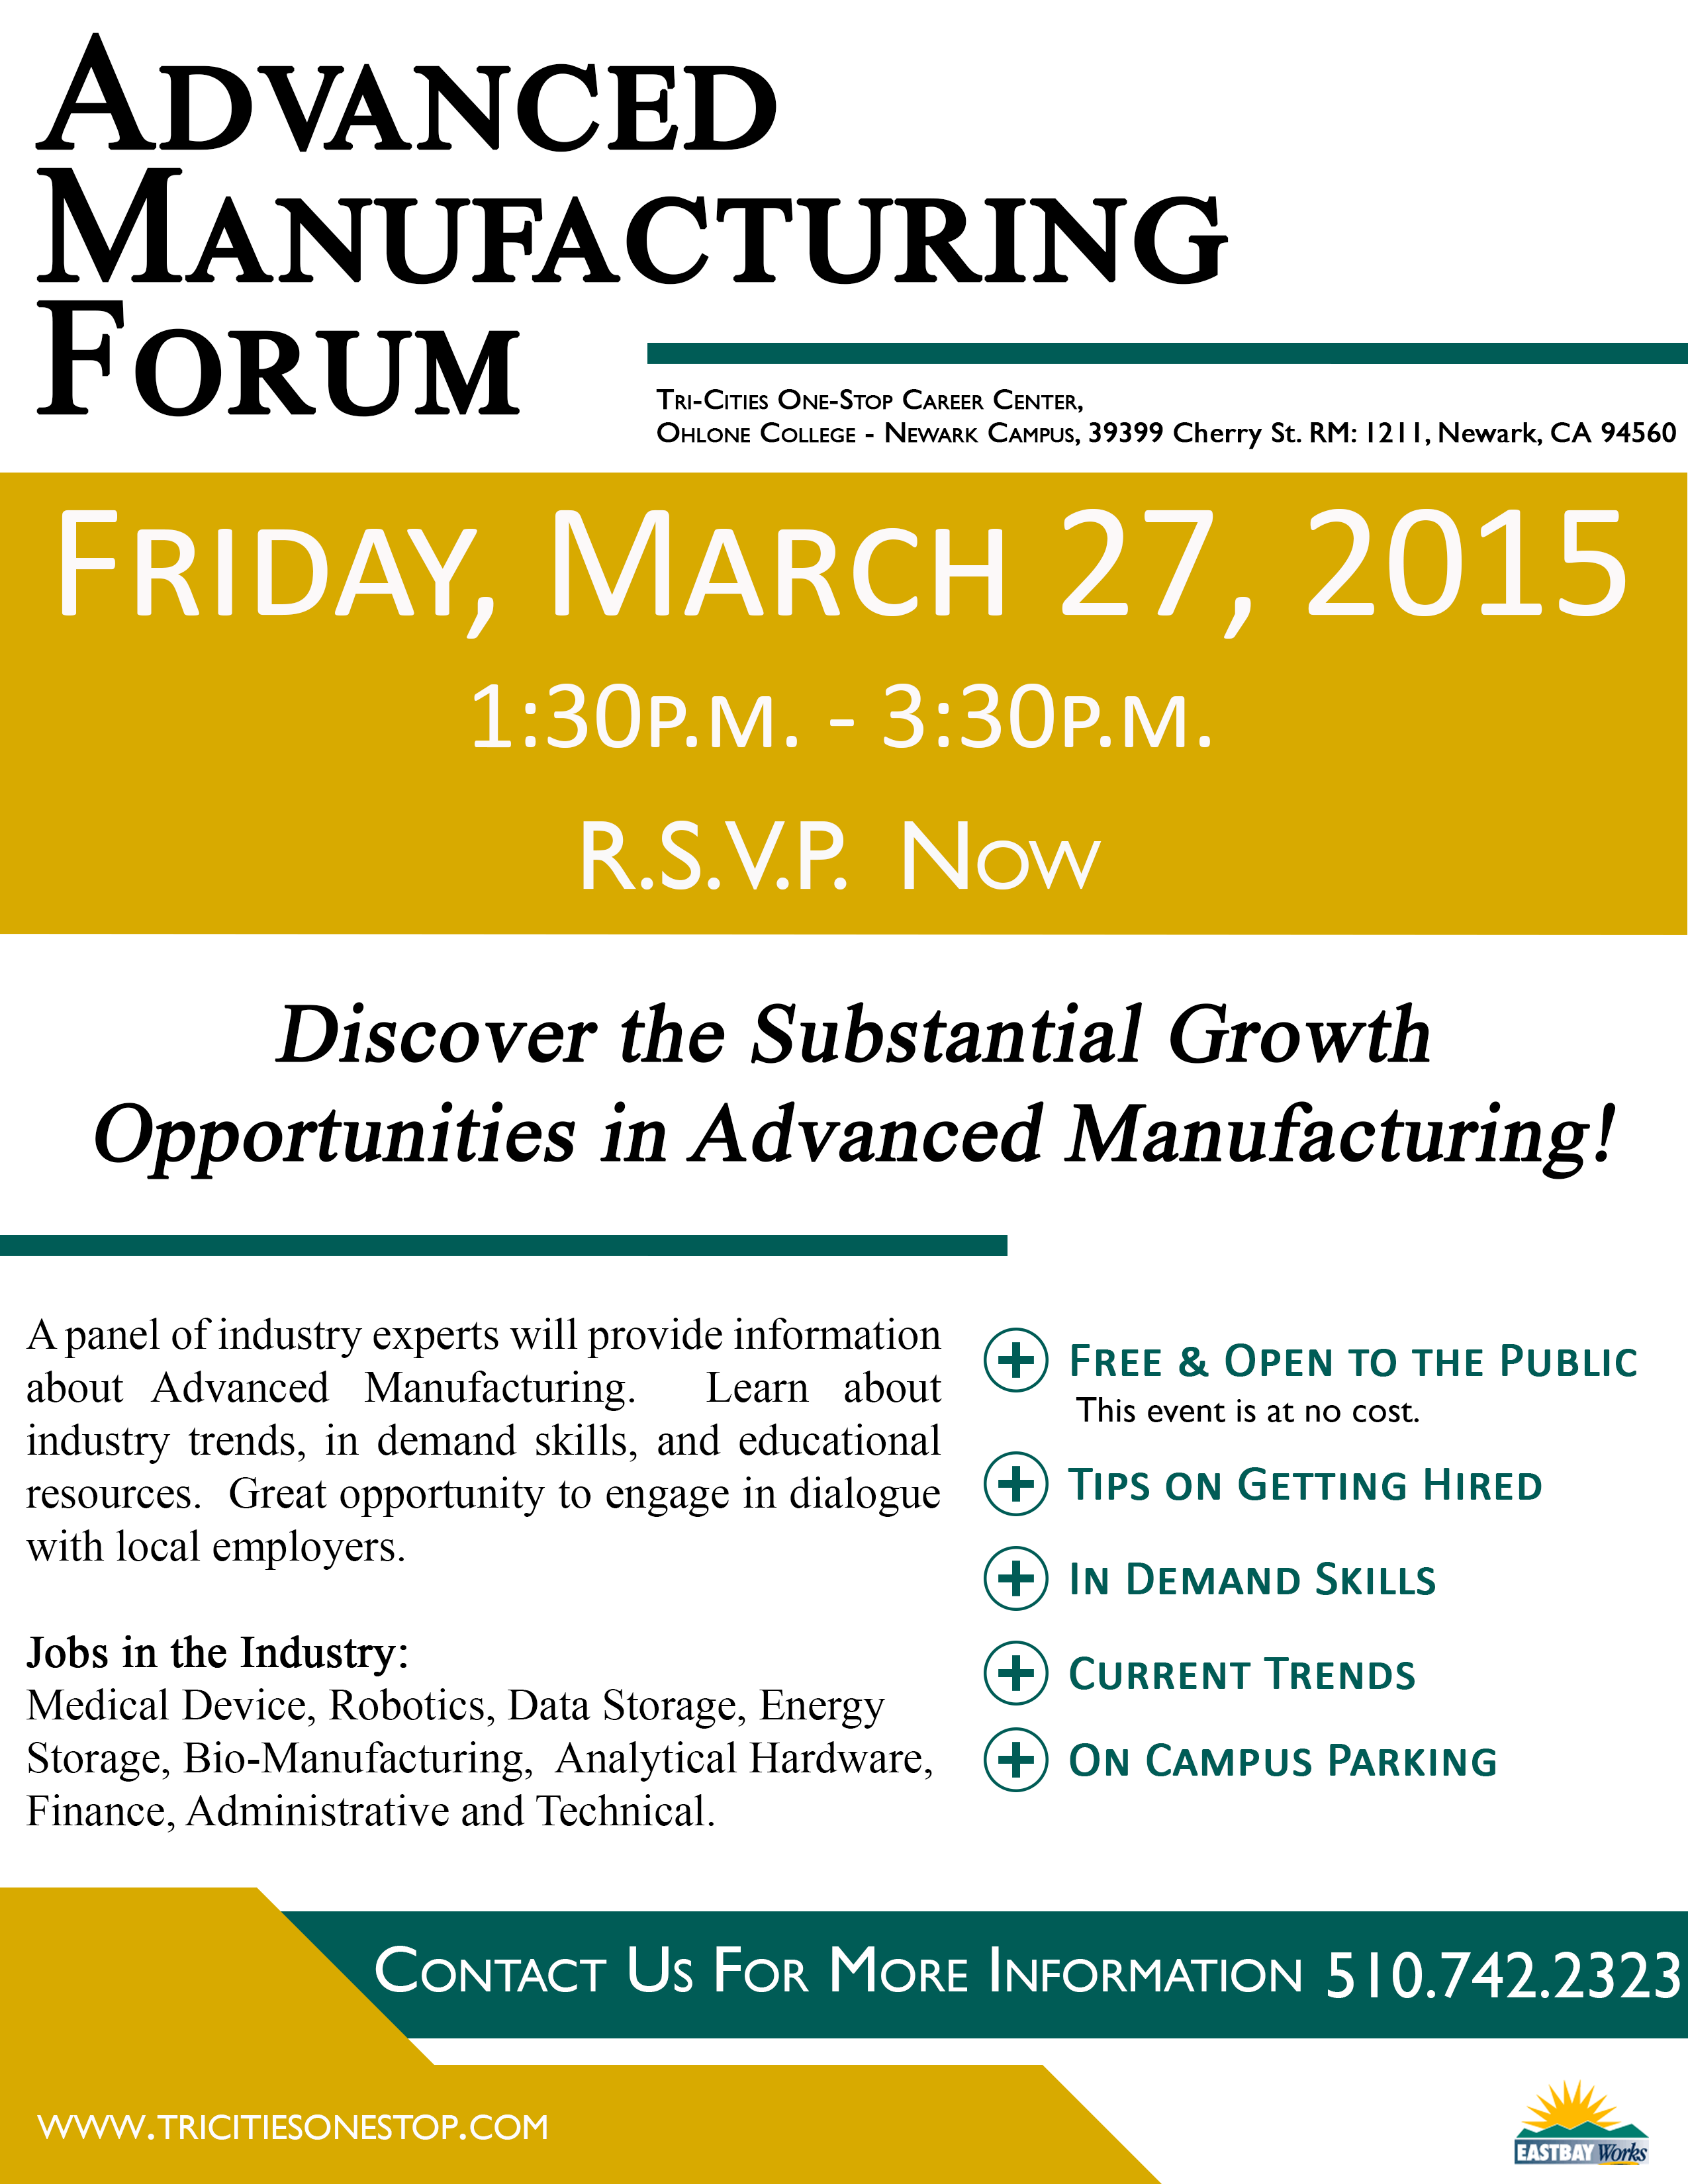 Advanced Manufacturing Forum Flyer